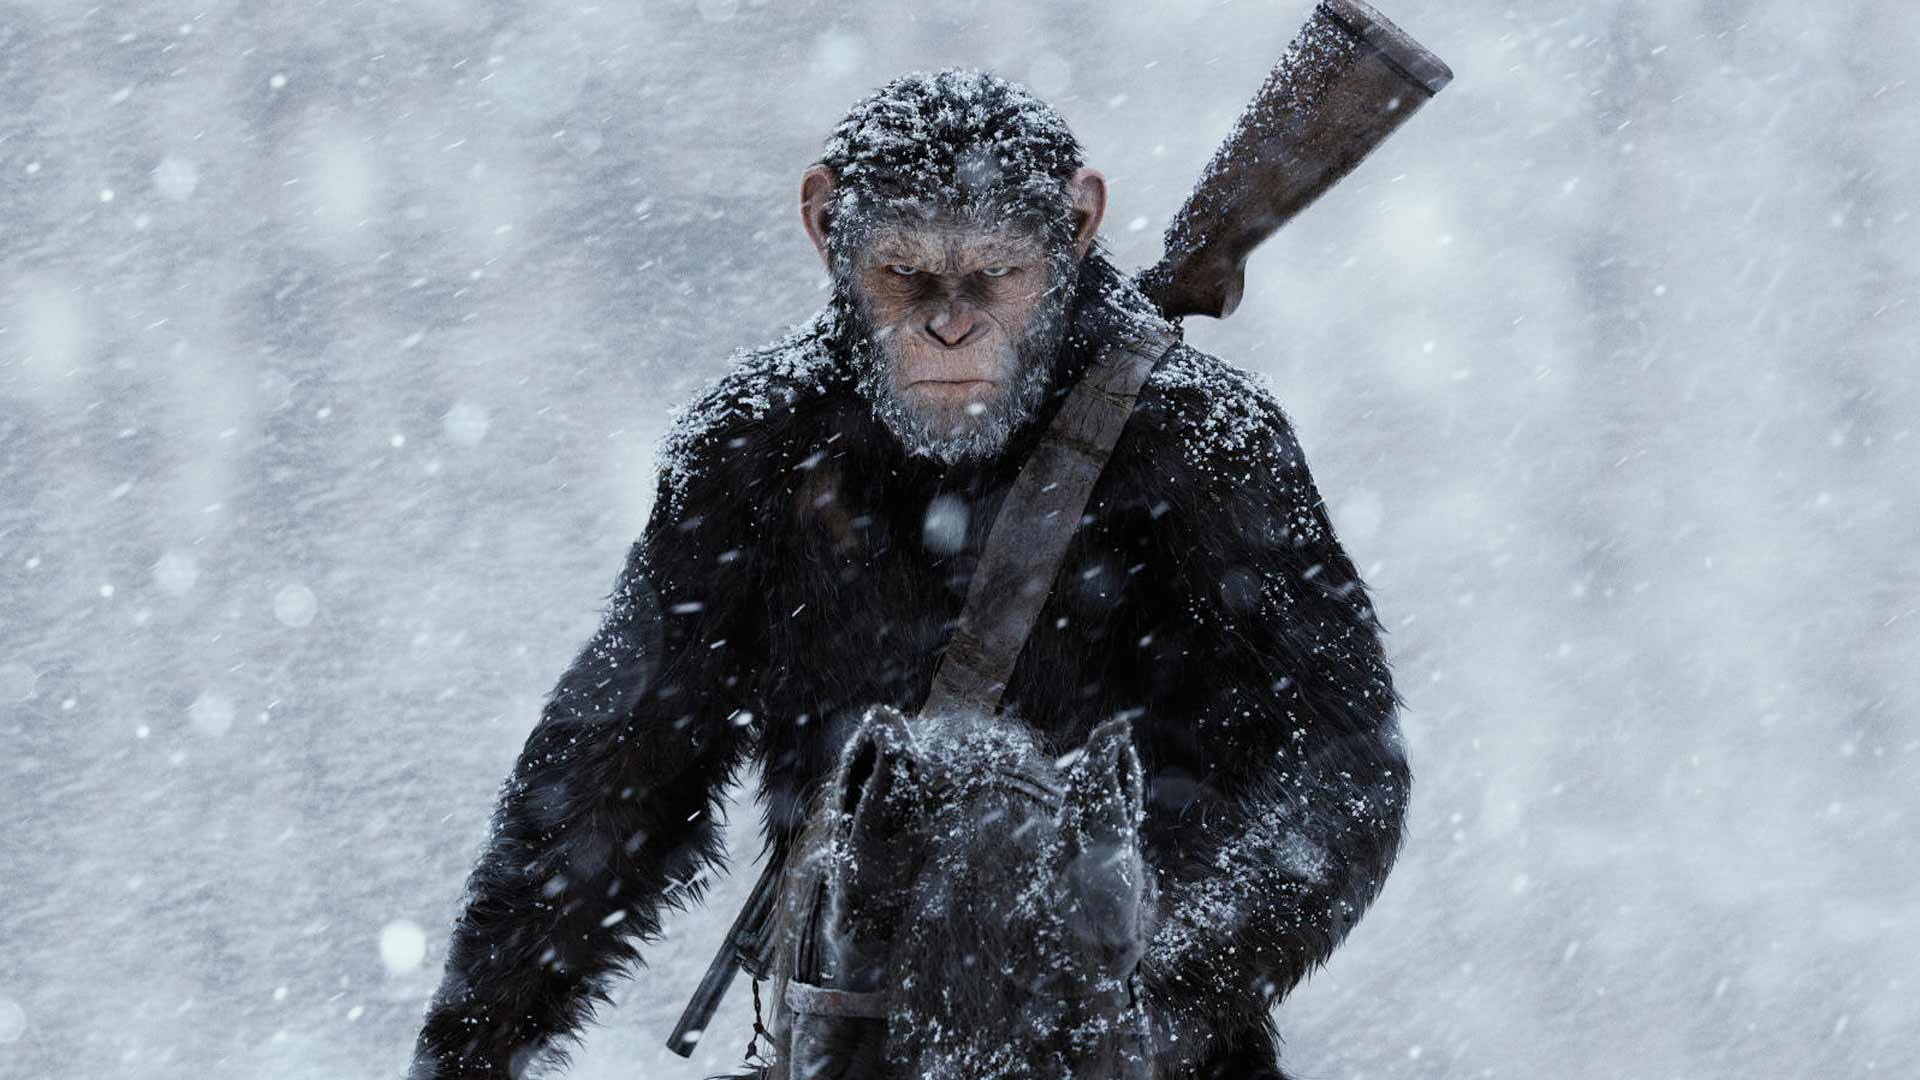 War For The Planet Of The Apes Hd Wallpapers 7wallpapers Net